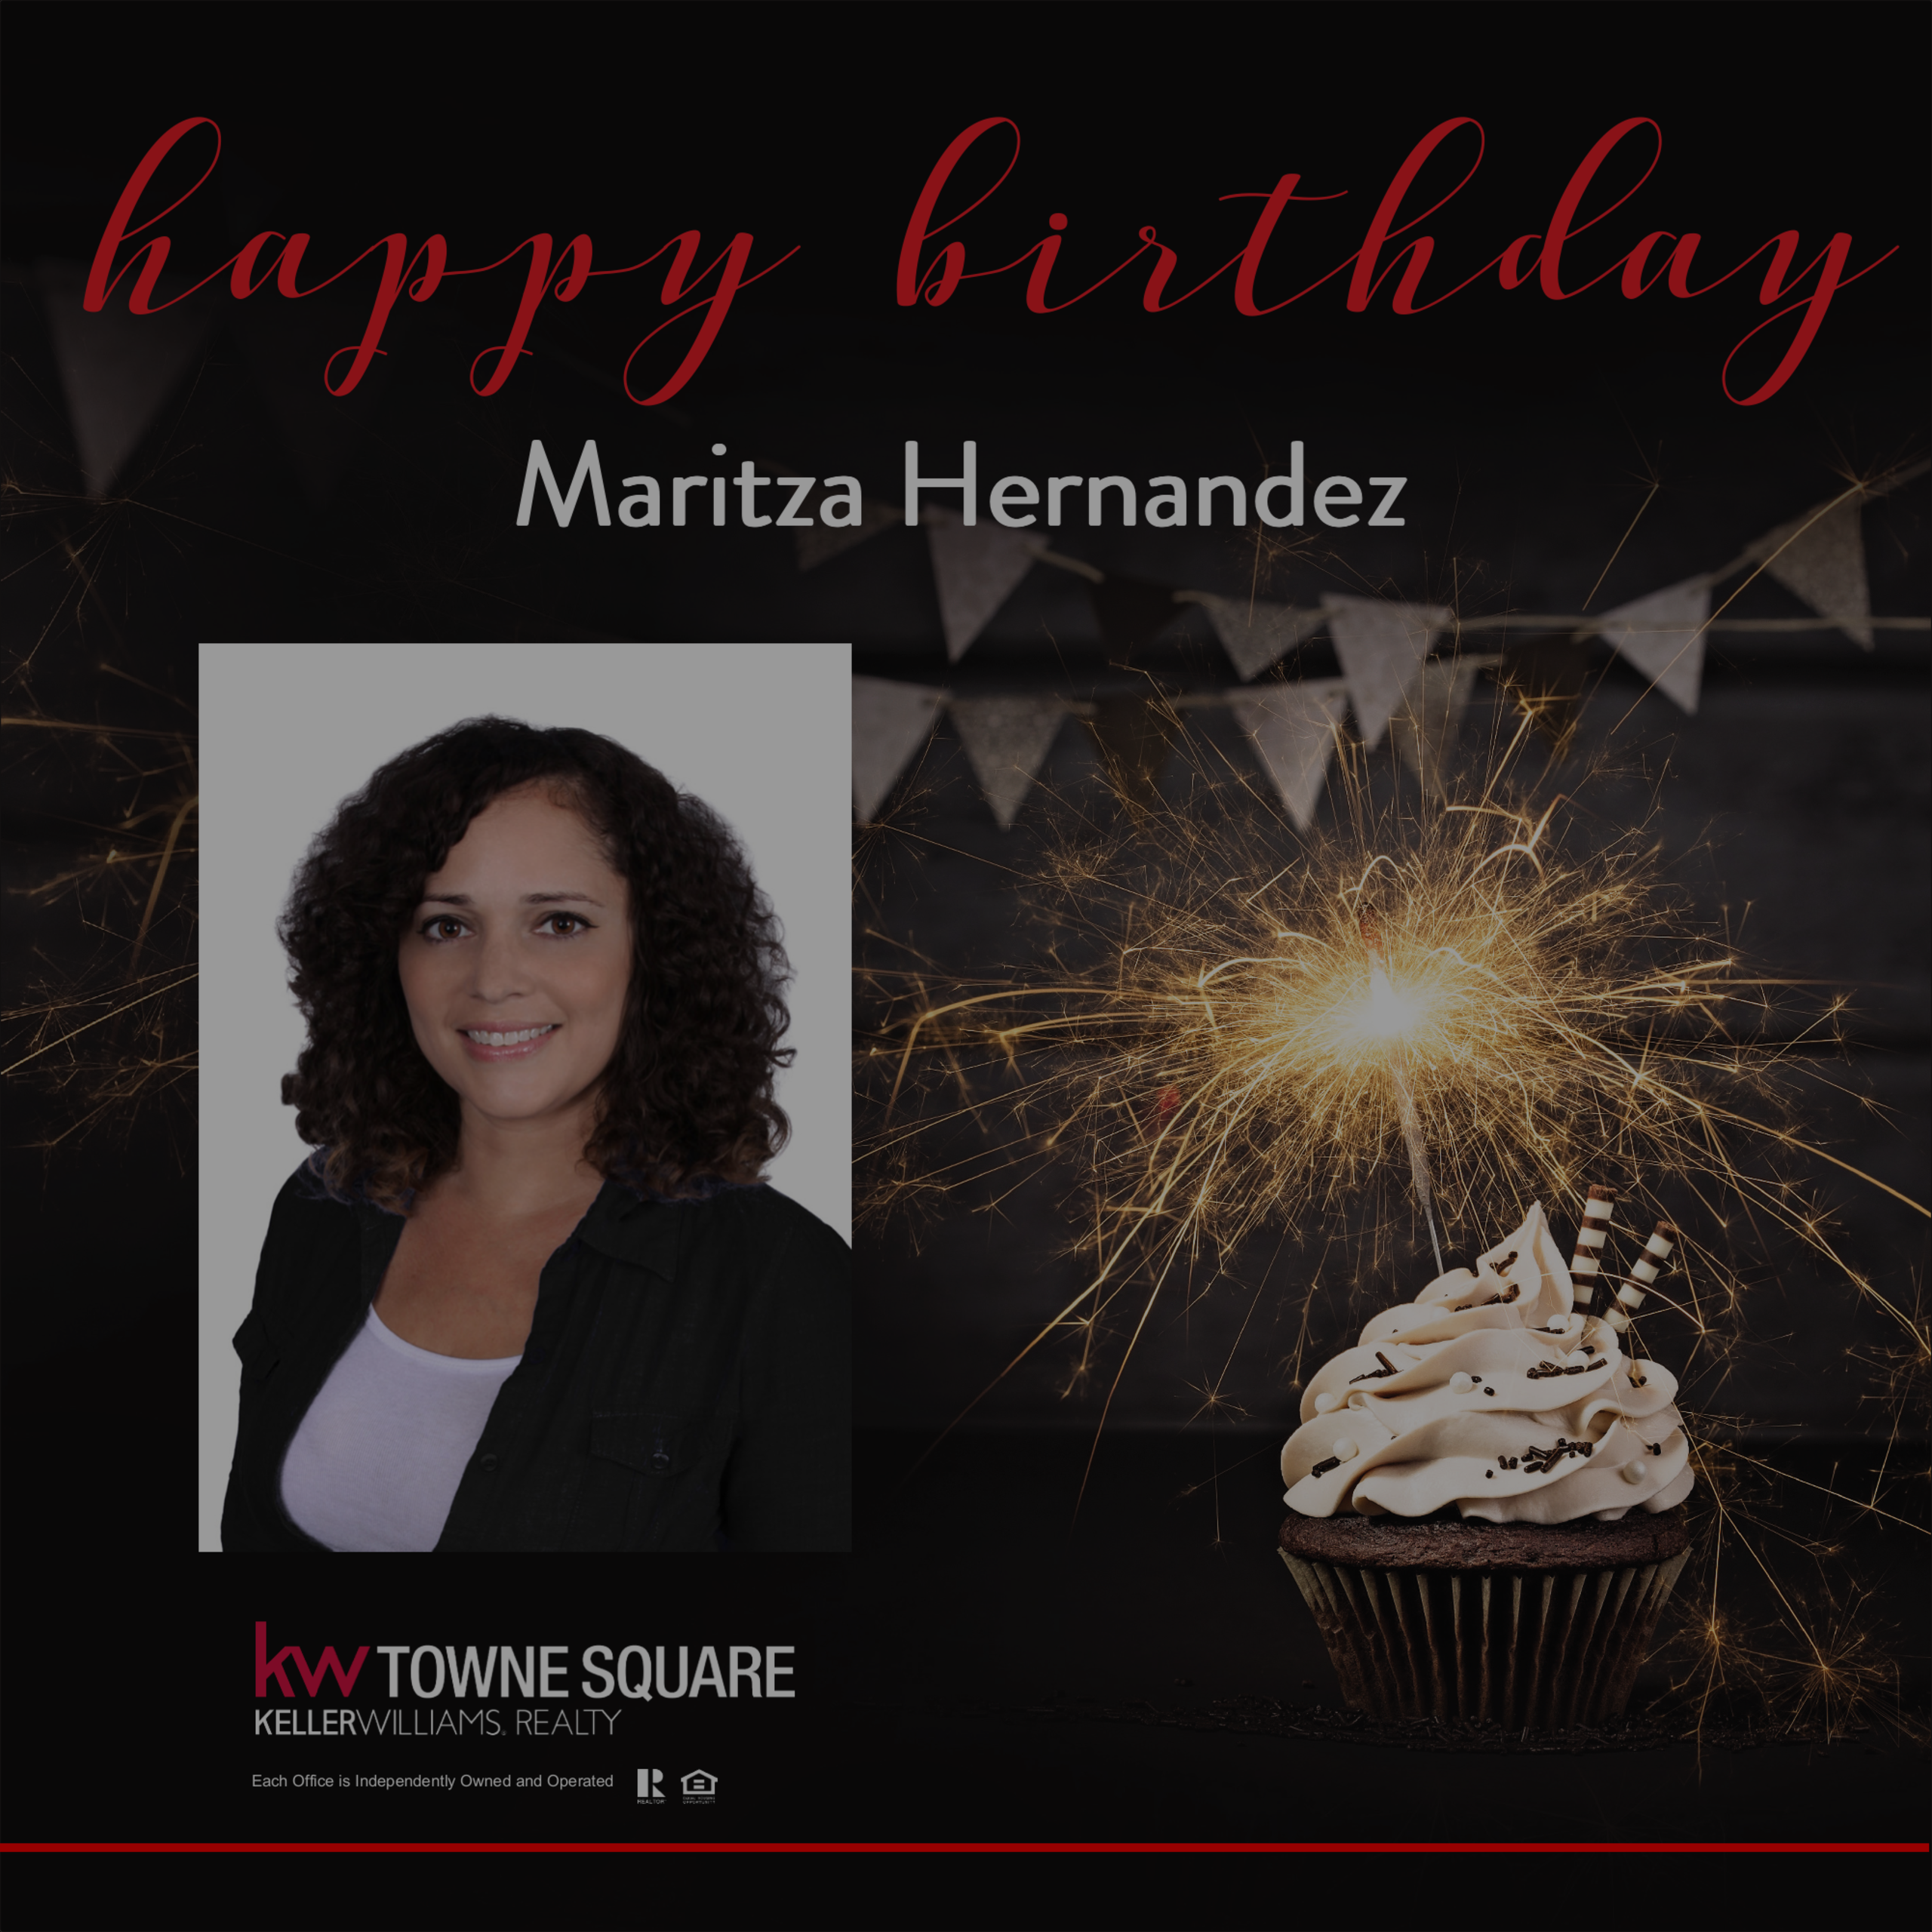 Happy Birthday Maritza!